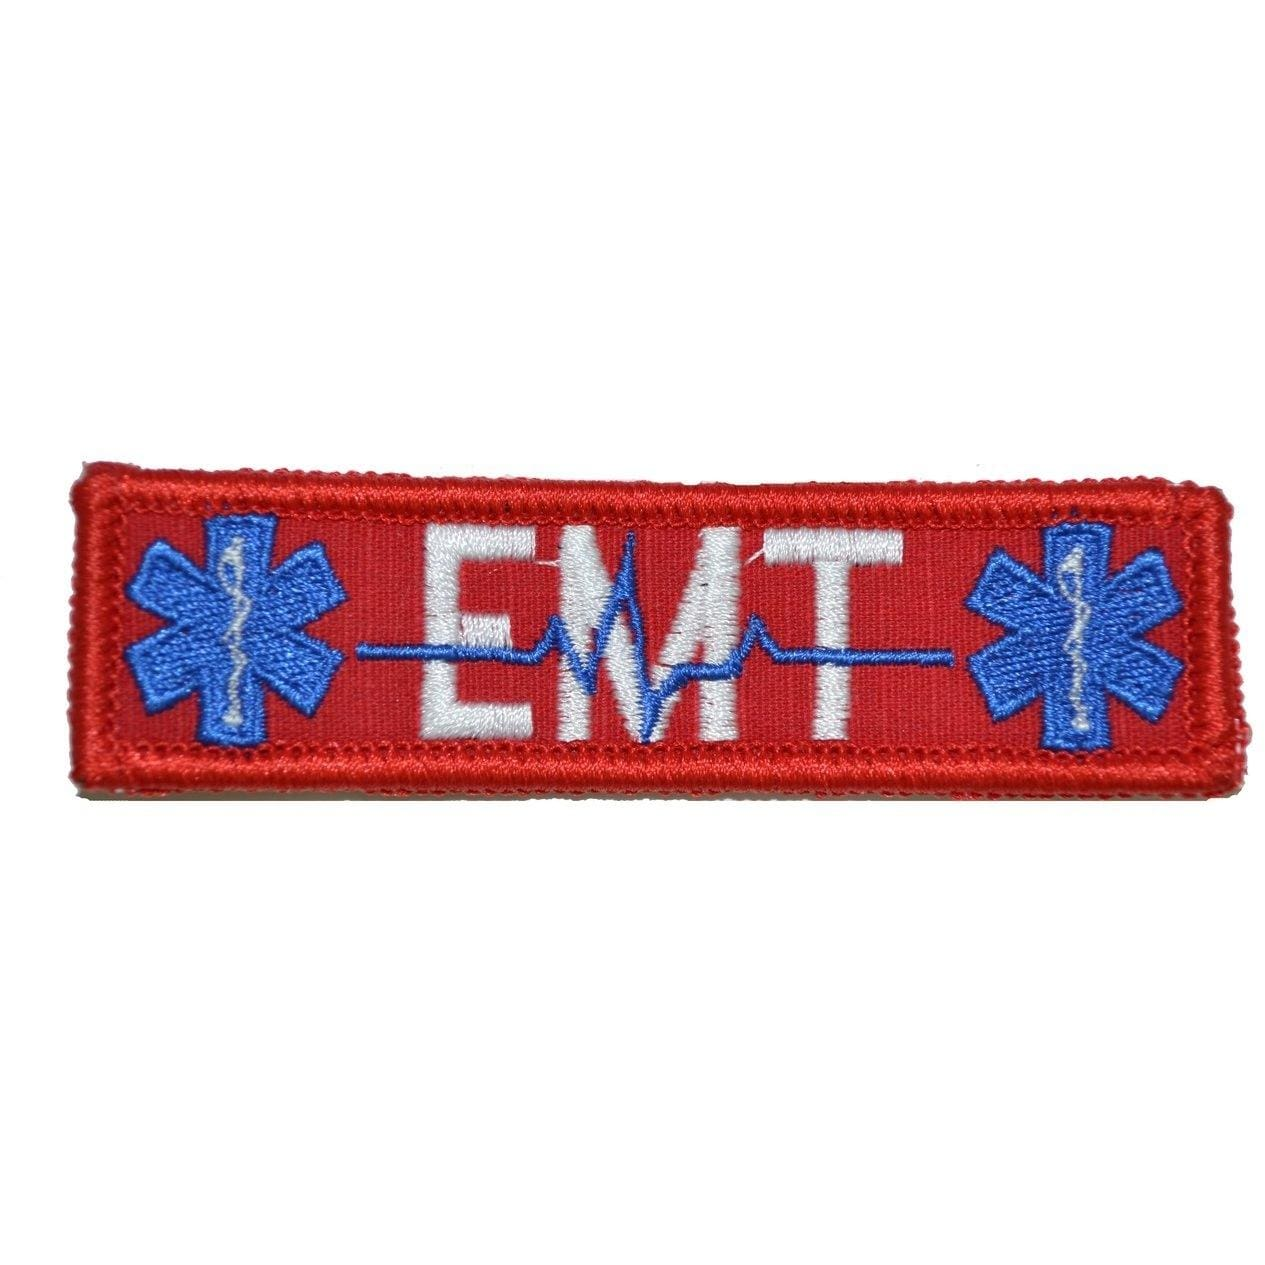 Tactical Gear Junkie Patches Red EMT Heartbeat and Stars of Life - 1x3.75 Patch